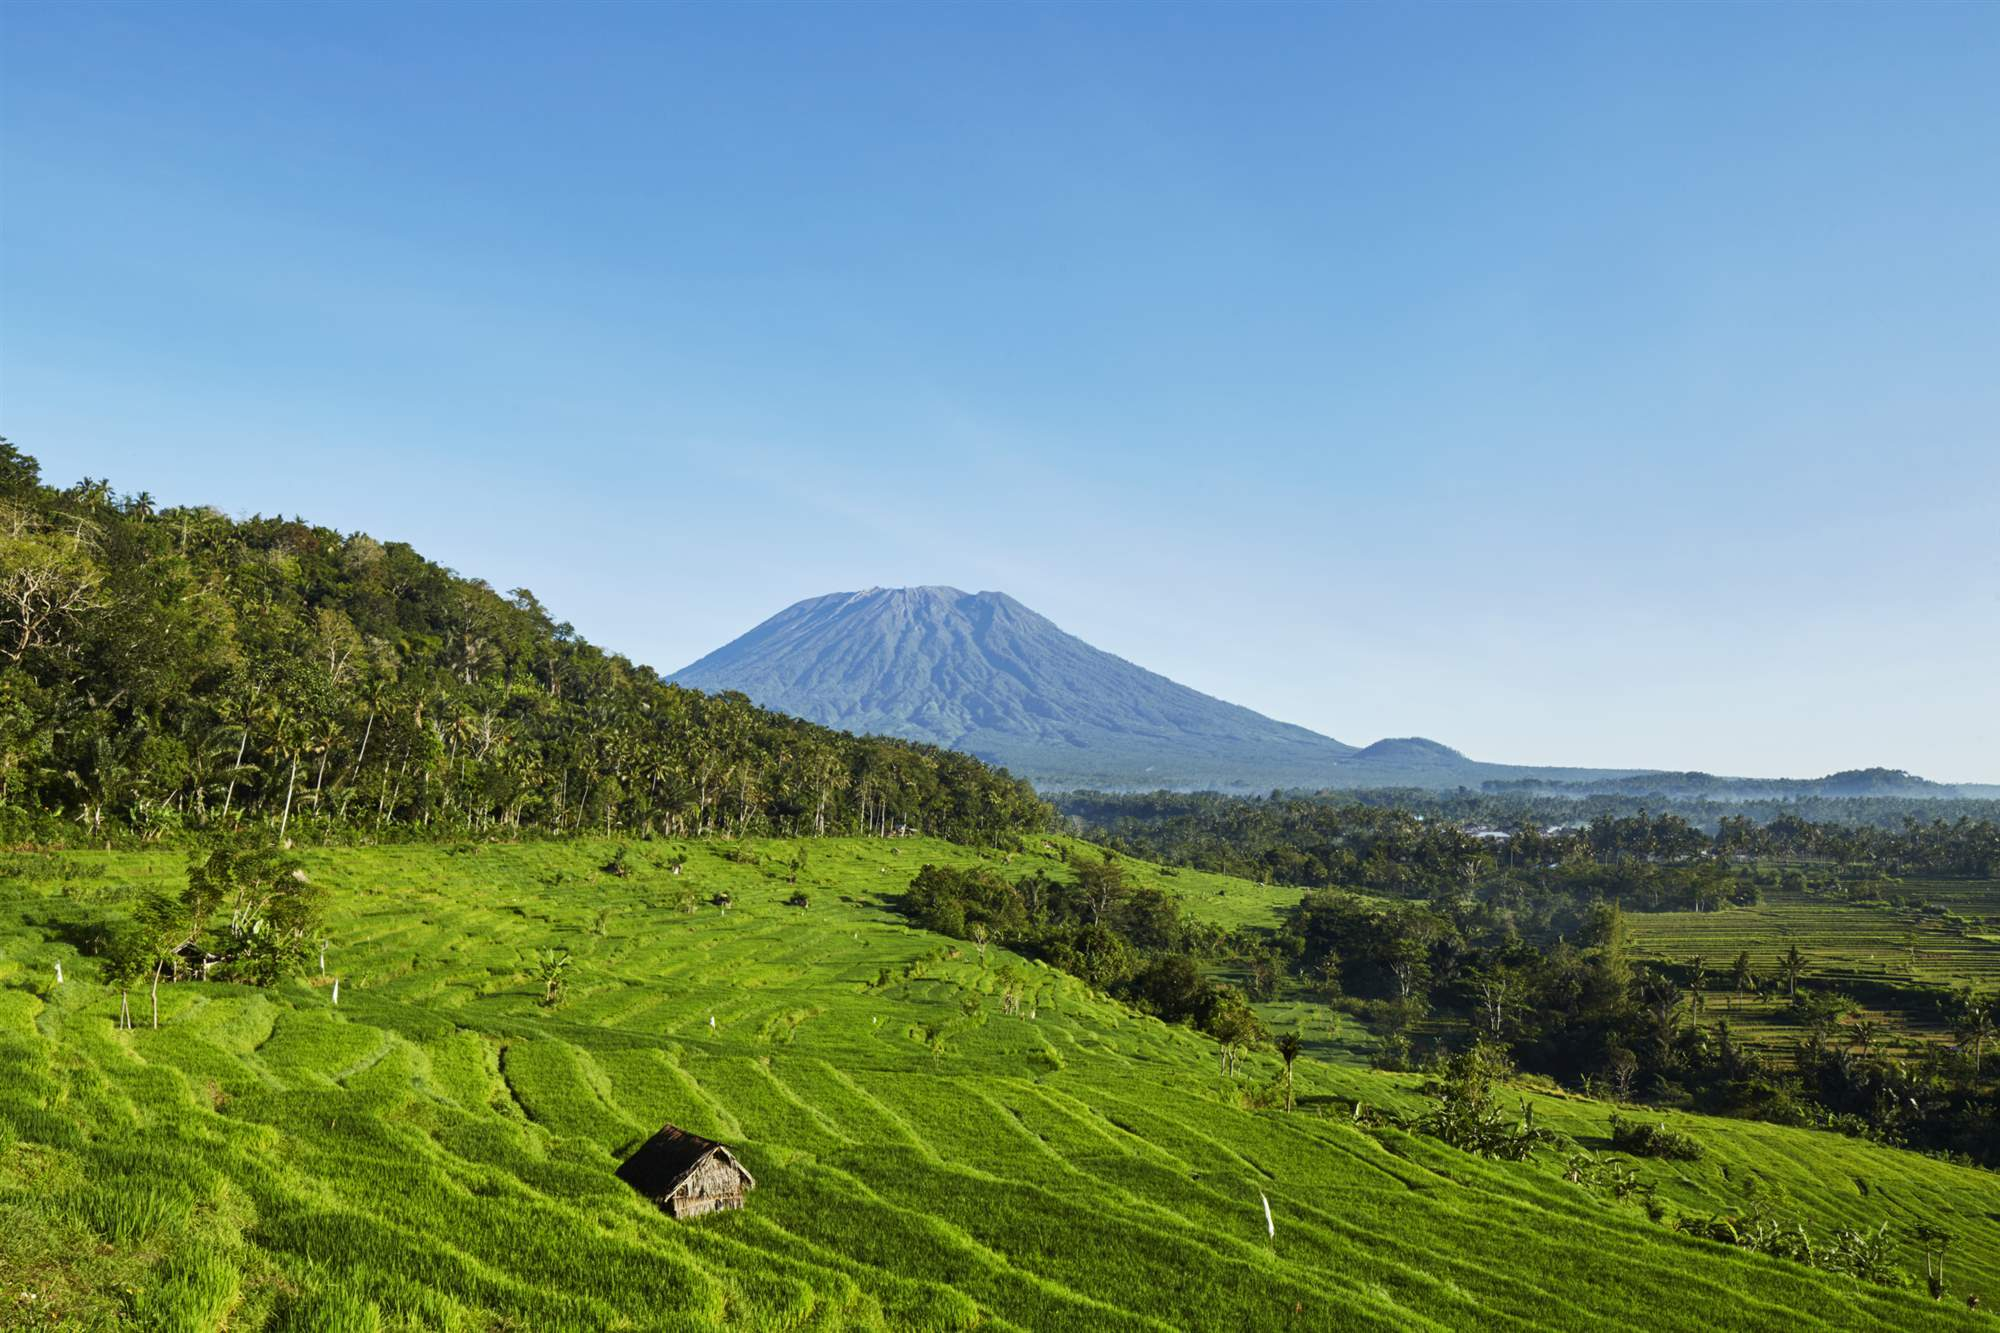 Amankila, Indonesia - Ricefields Mount Agung High Res 11474. A gusto del huésped